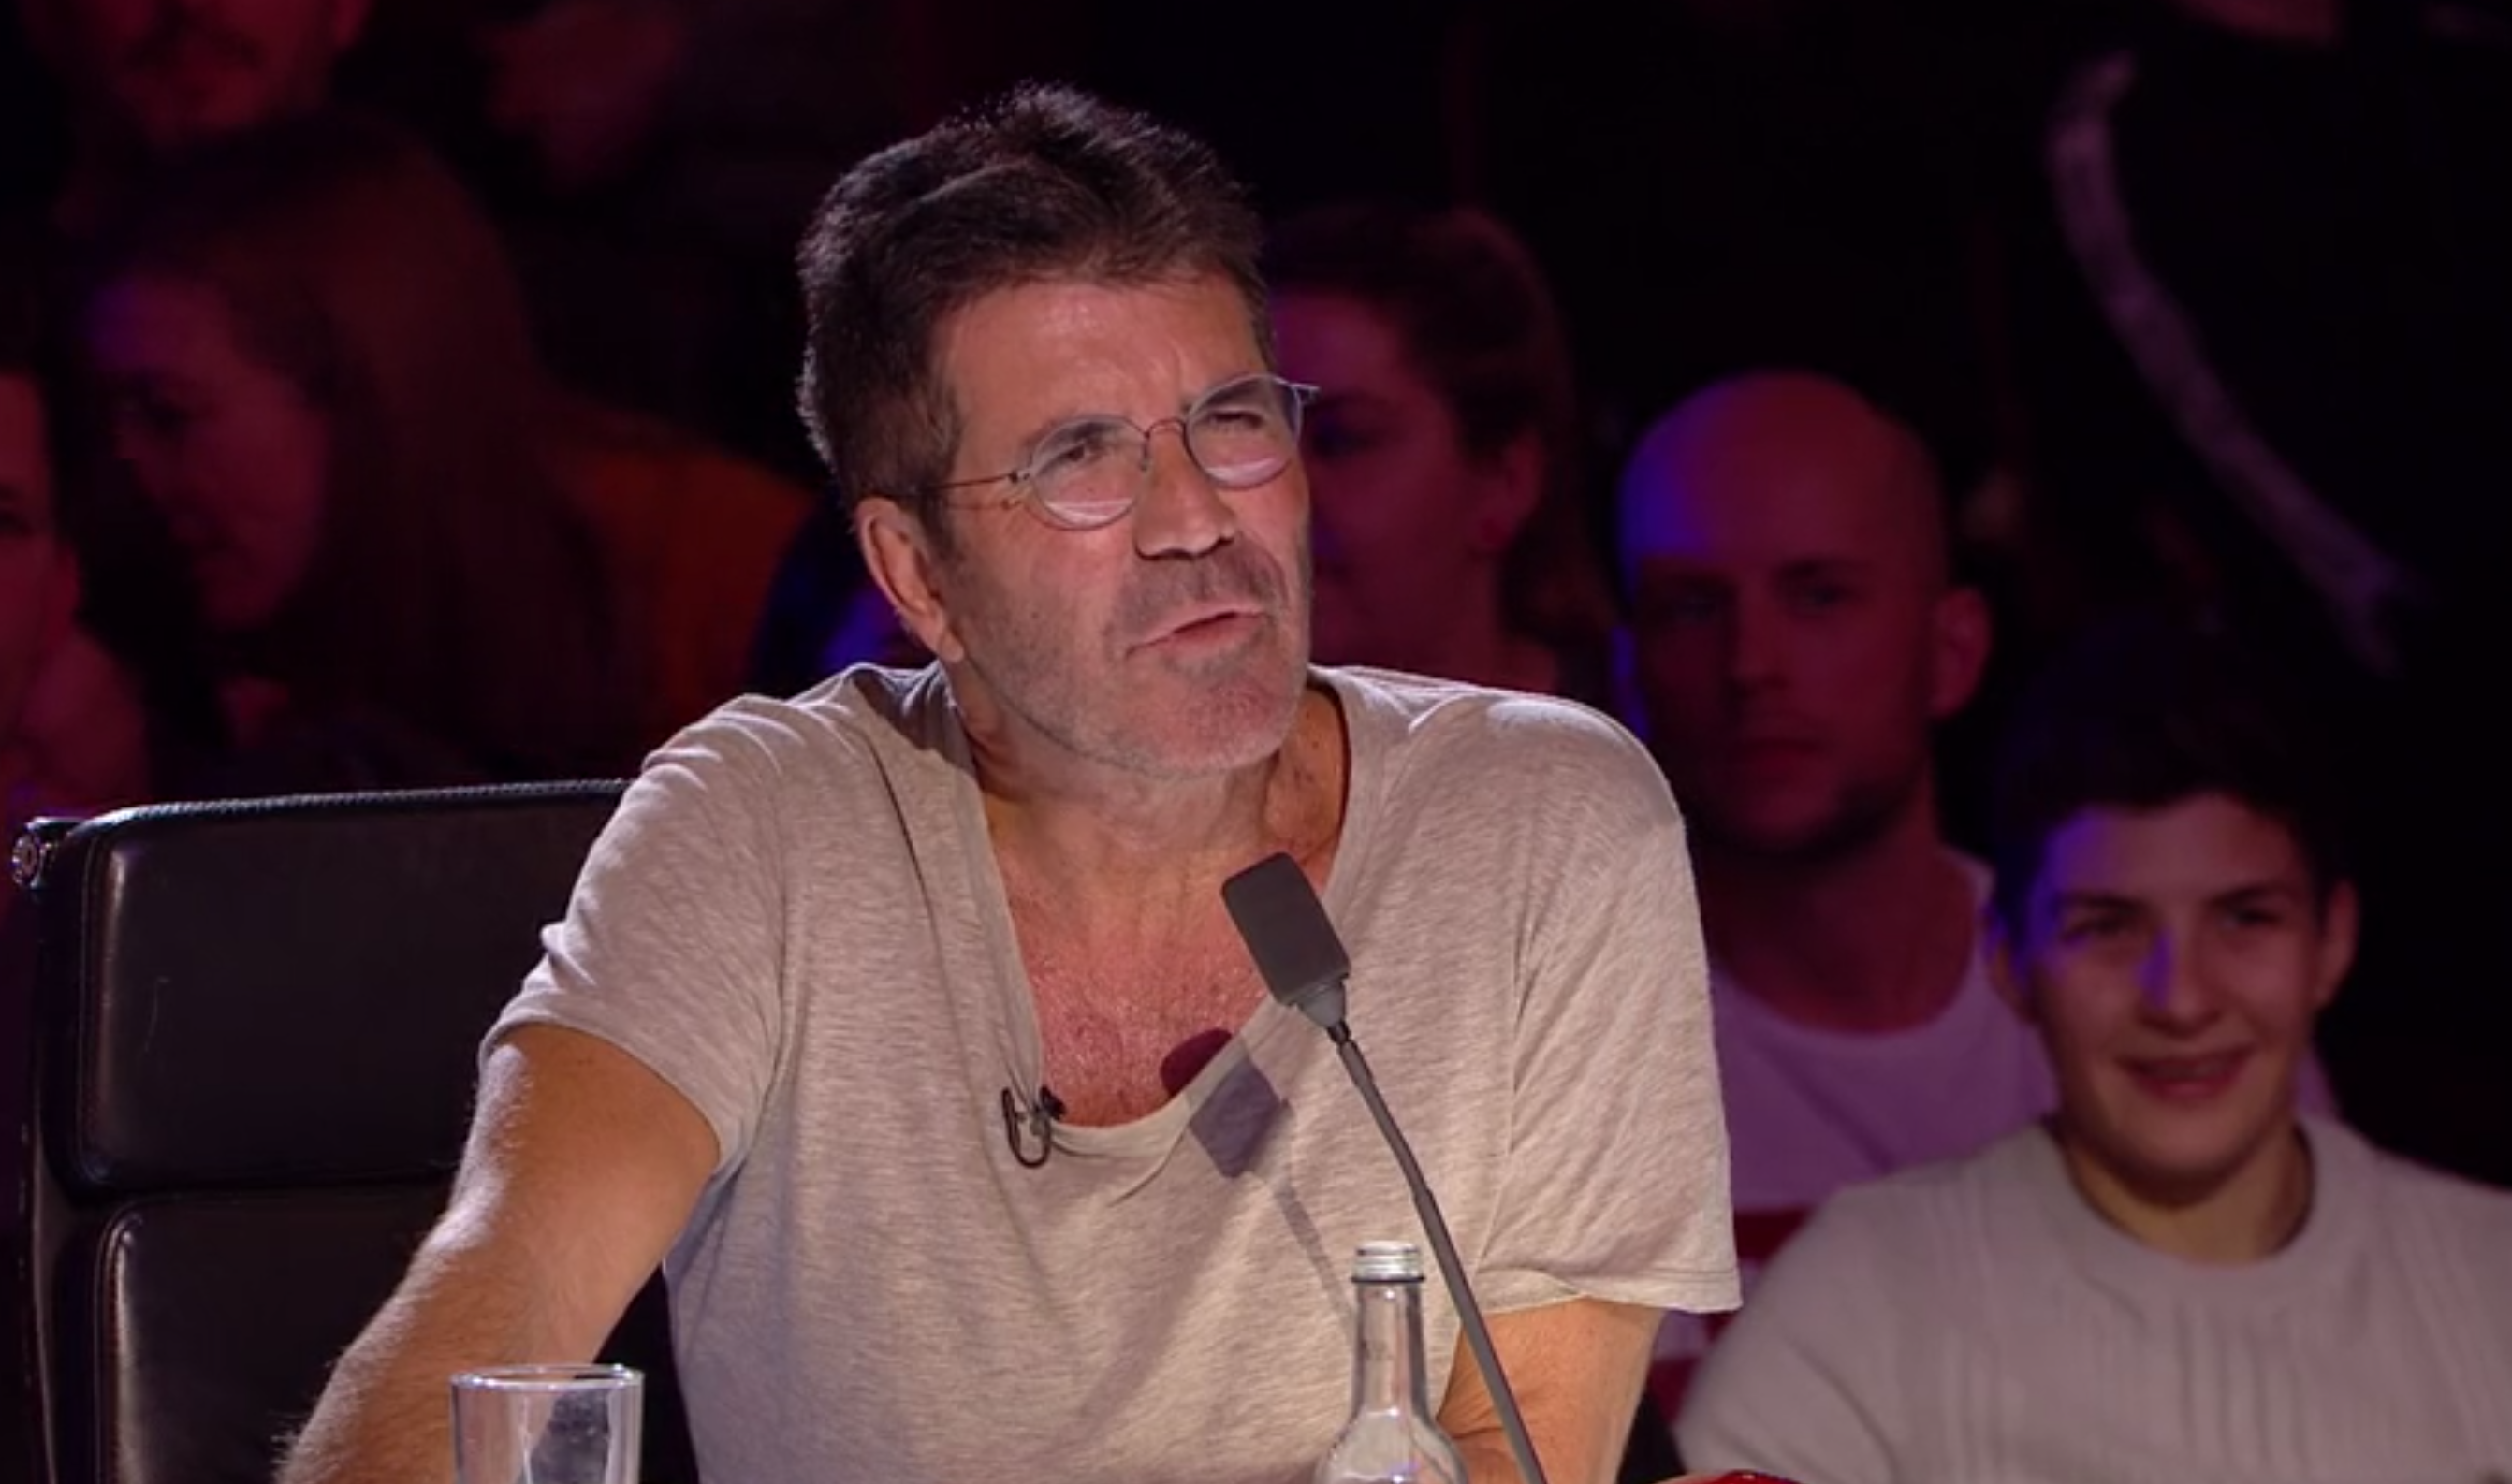 Britain's Got Talent viewers stunned as Simon Cowell admits he doesn't know what Comfort is